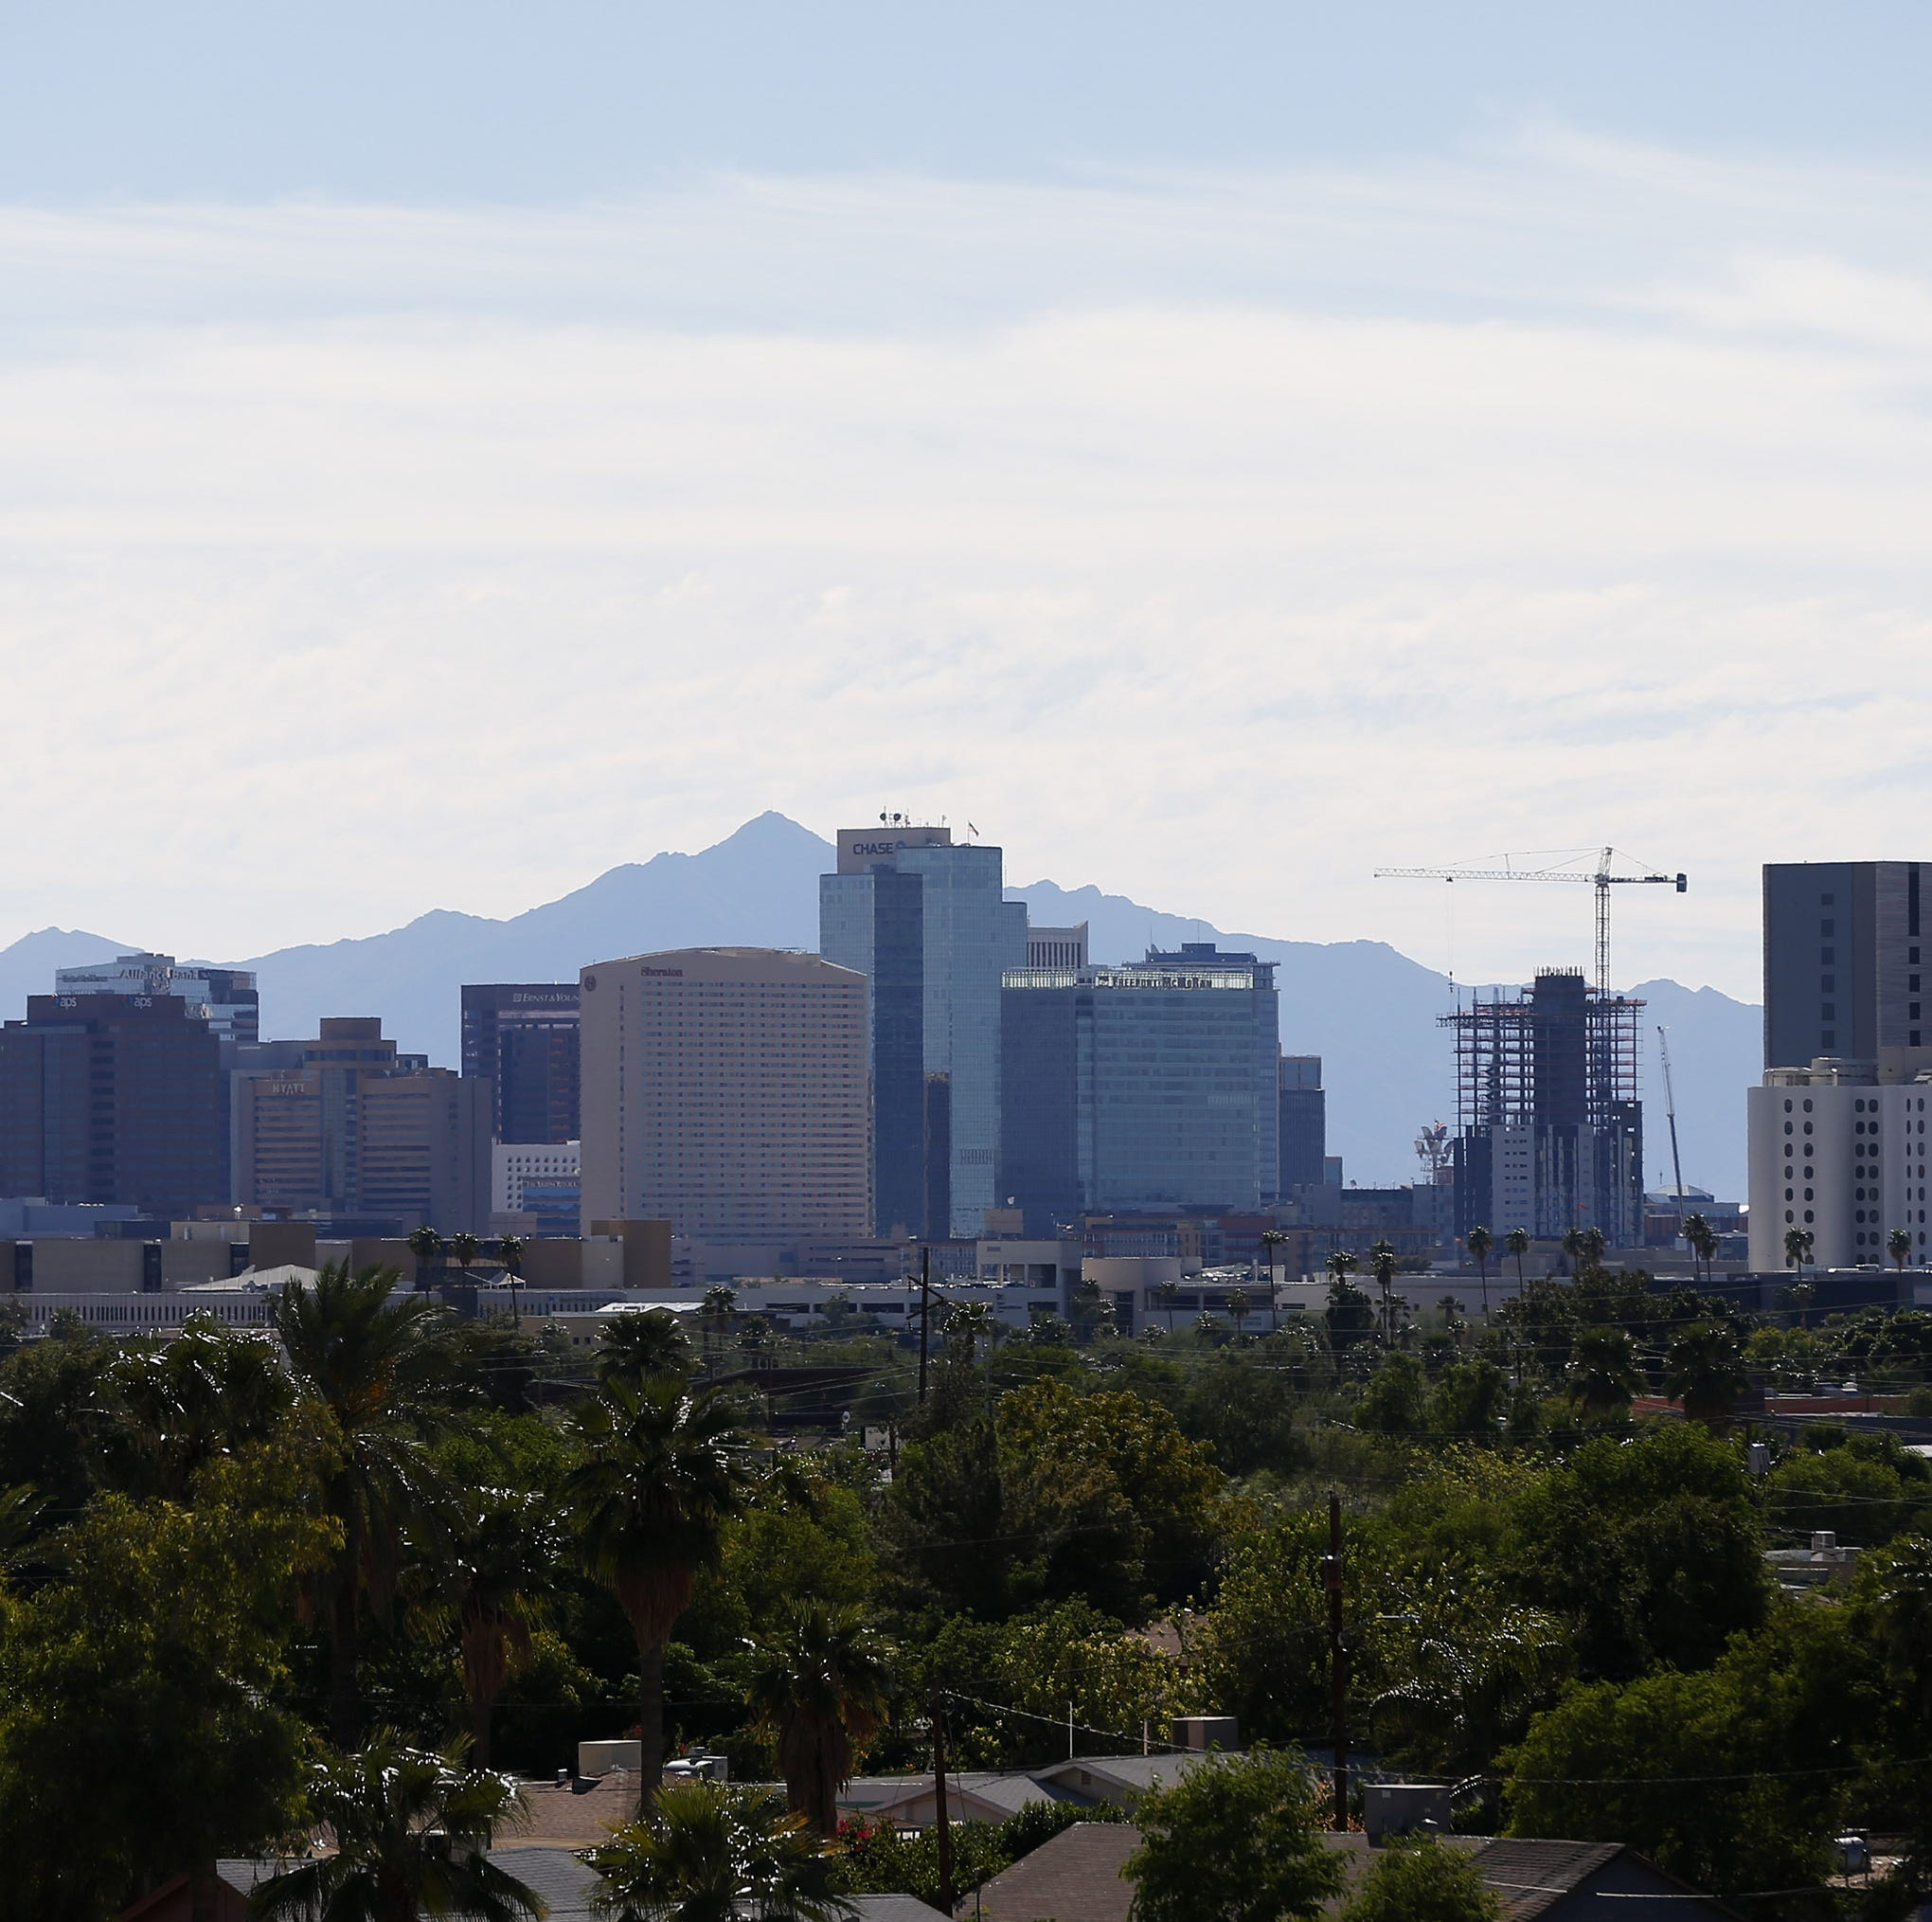 Buckeye, Phoenix are fastest growing cities in the United States